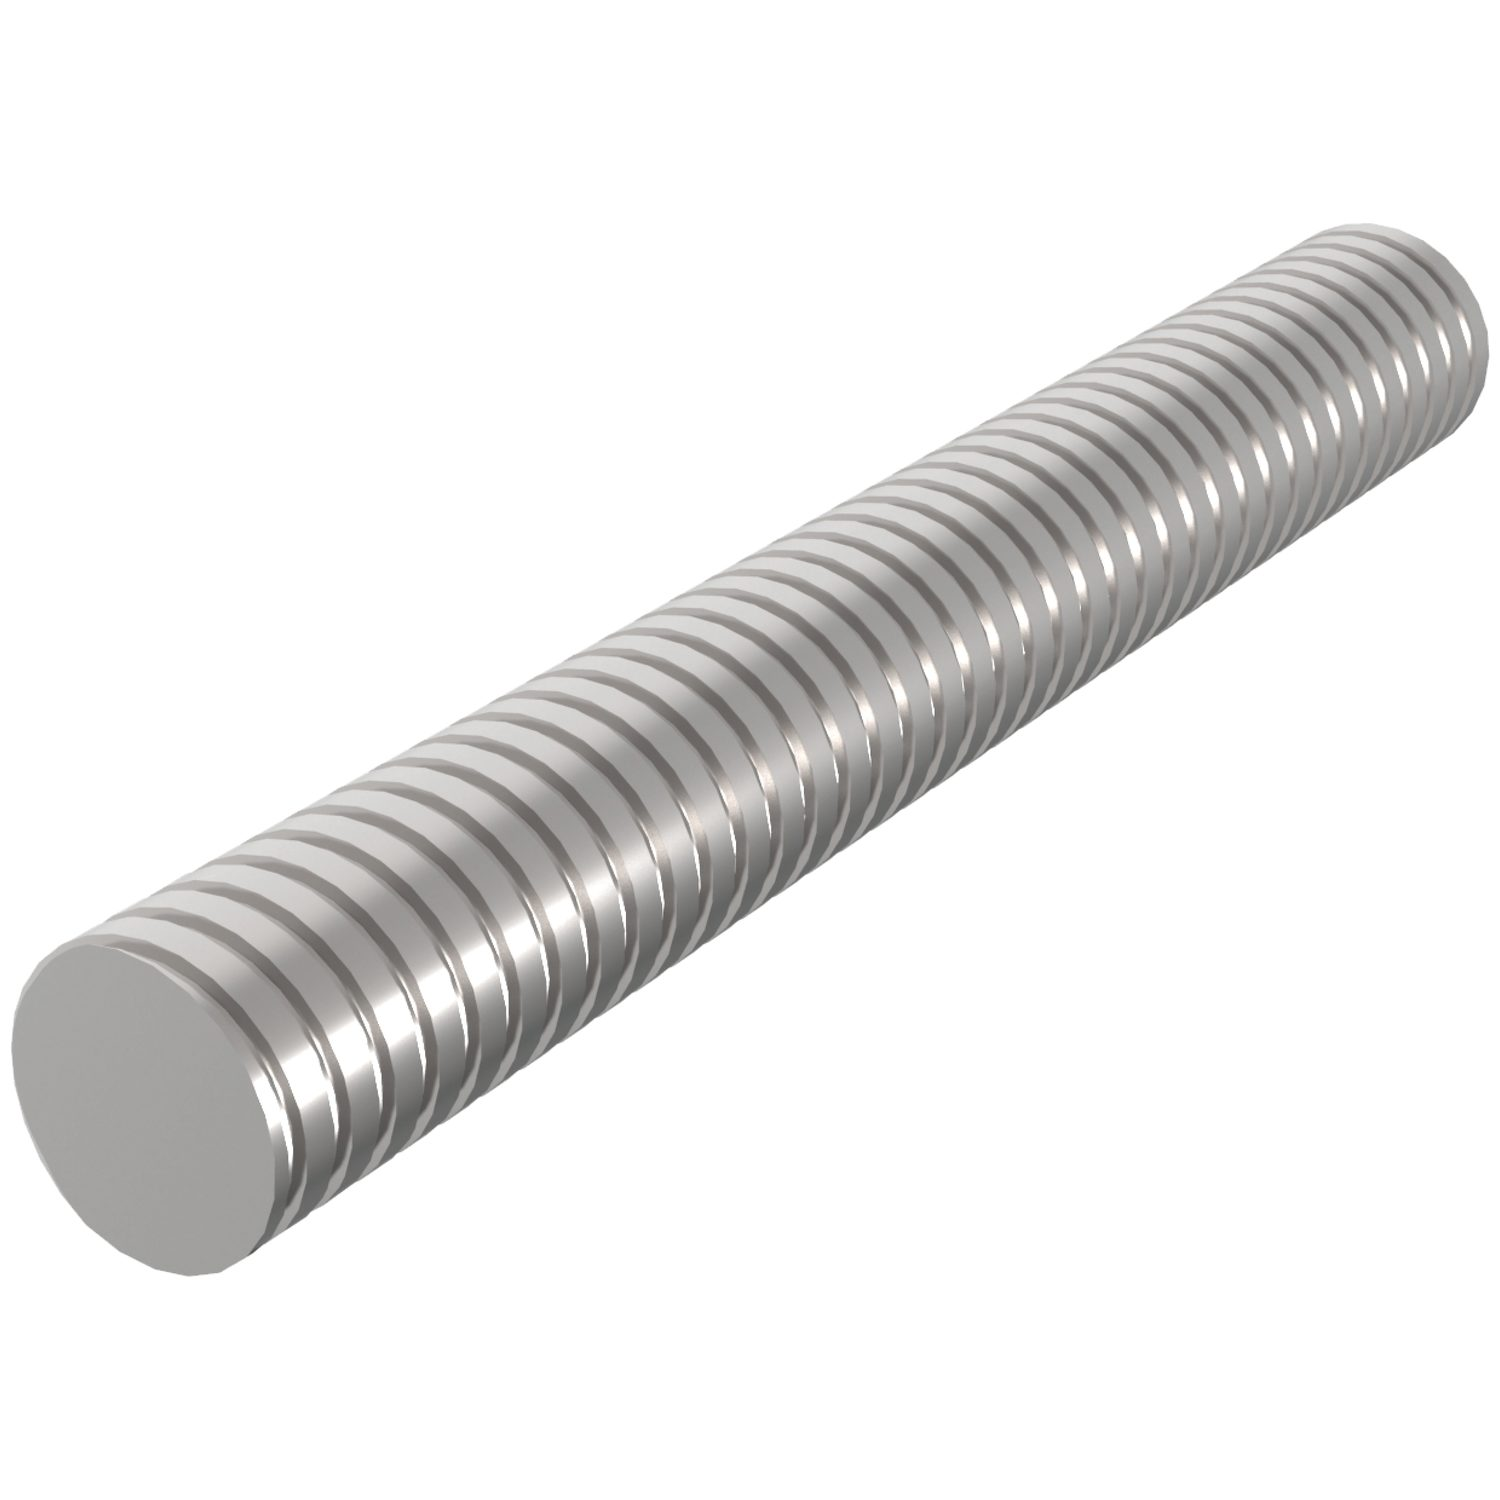 Lead Screws and Ball Screws from Automotion | Automotion